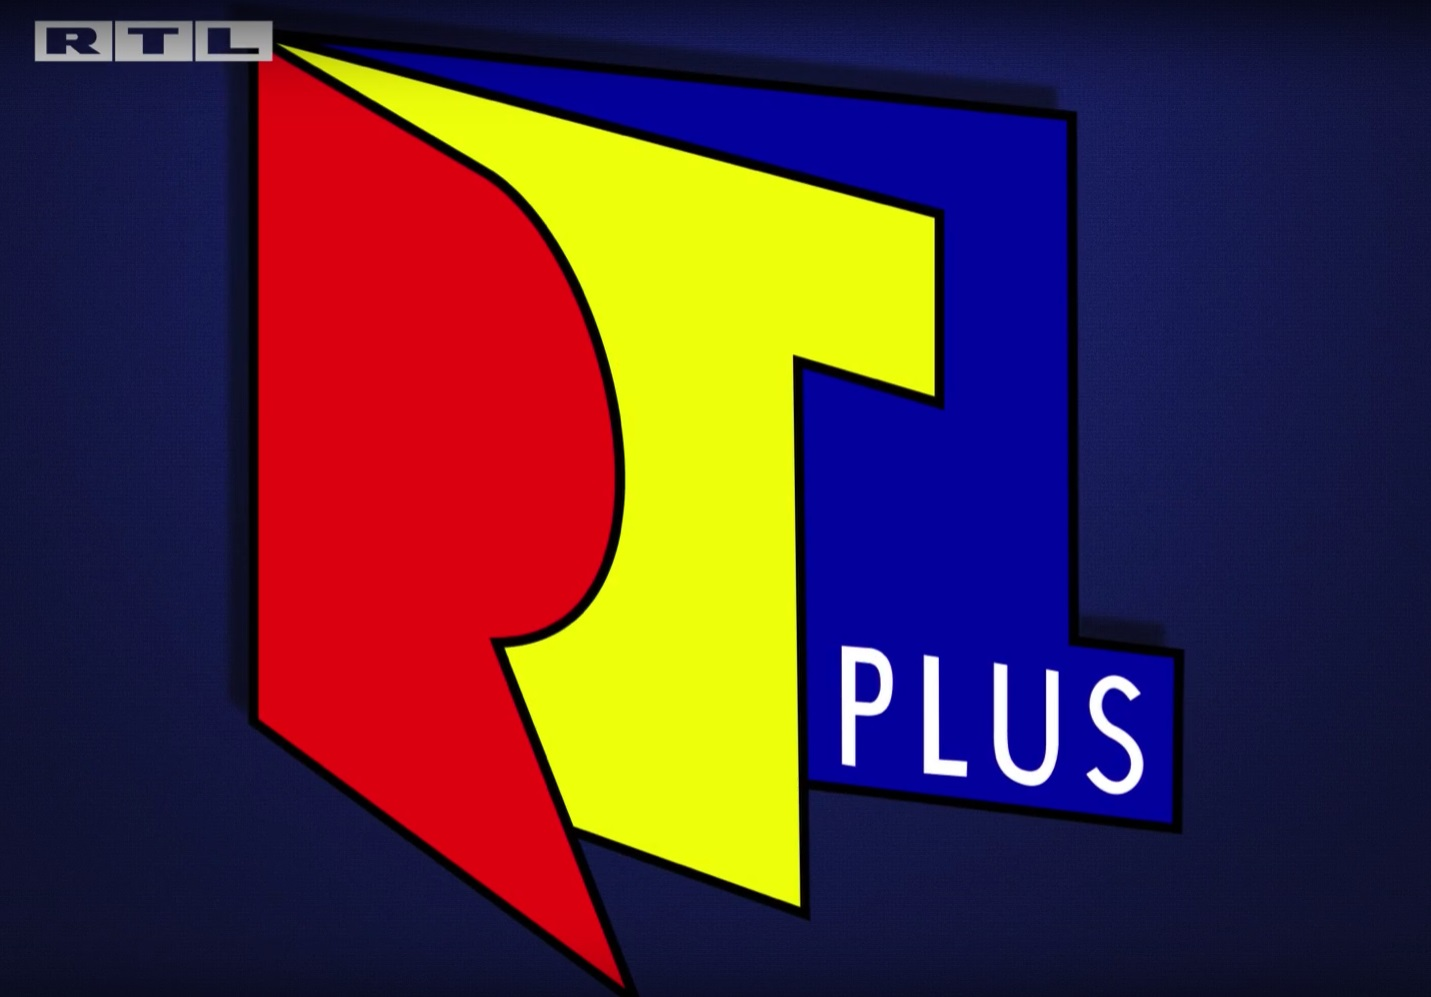 Rtlplus live stream legal online sehen so geht s giga for Spiegel tv live stream rtl